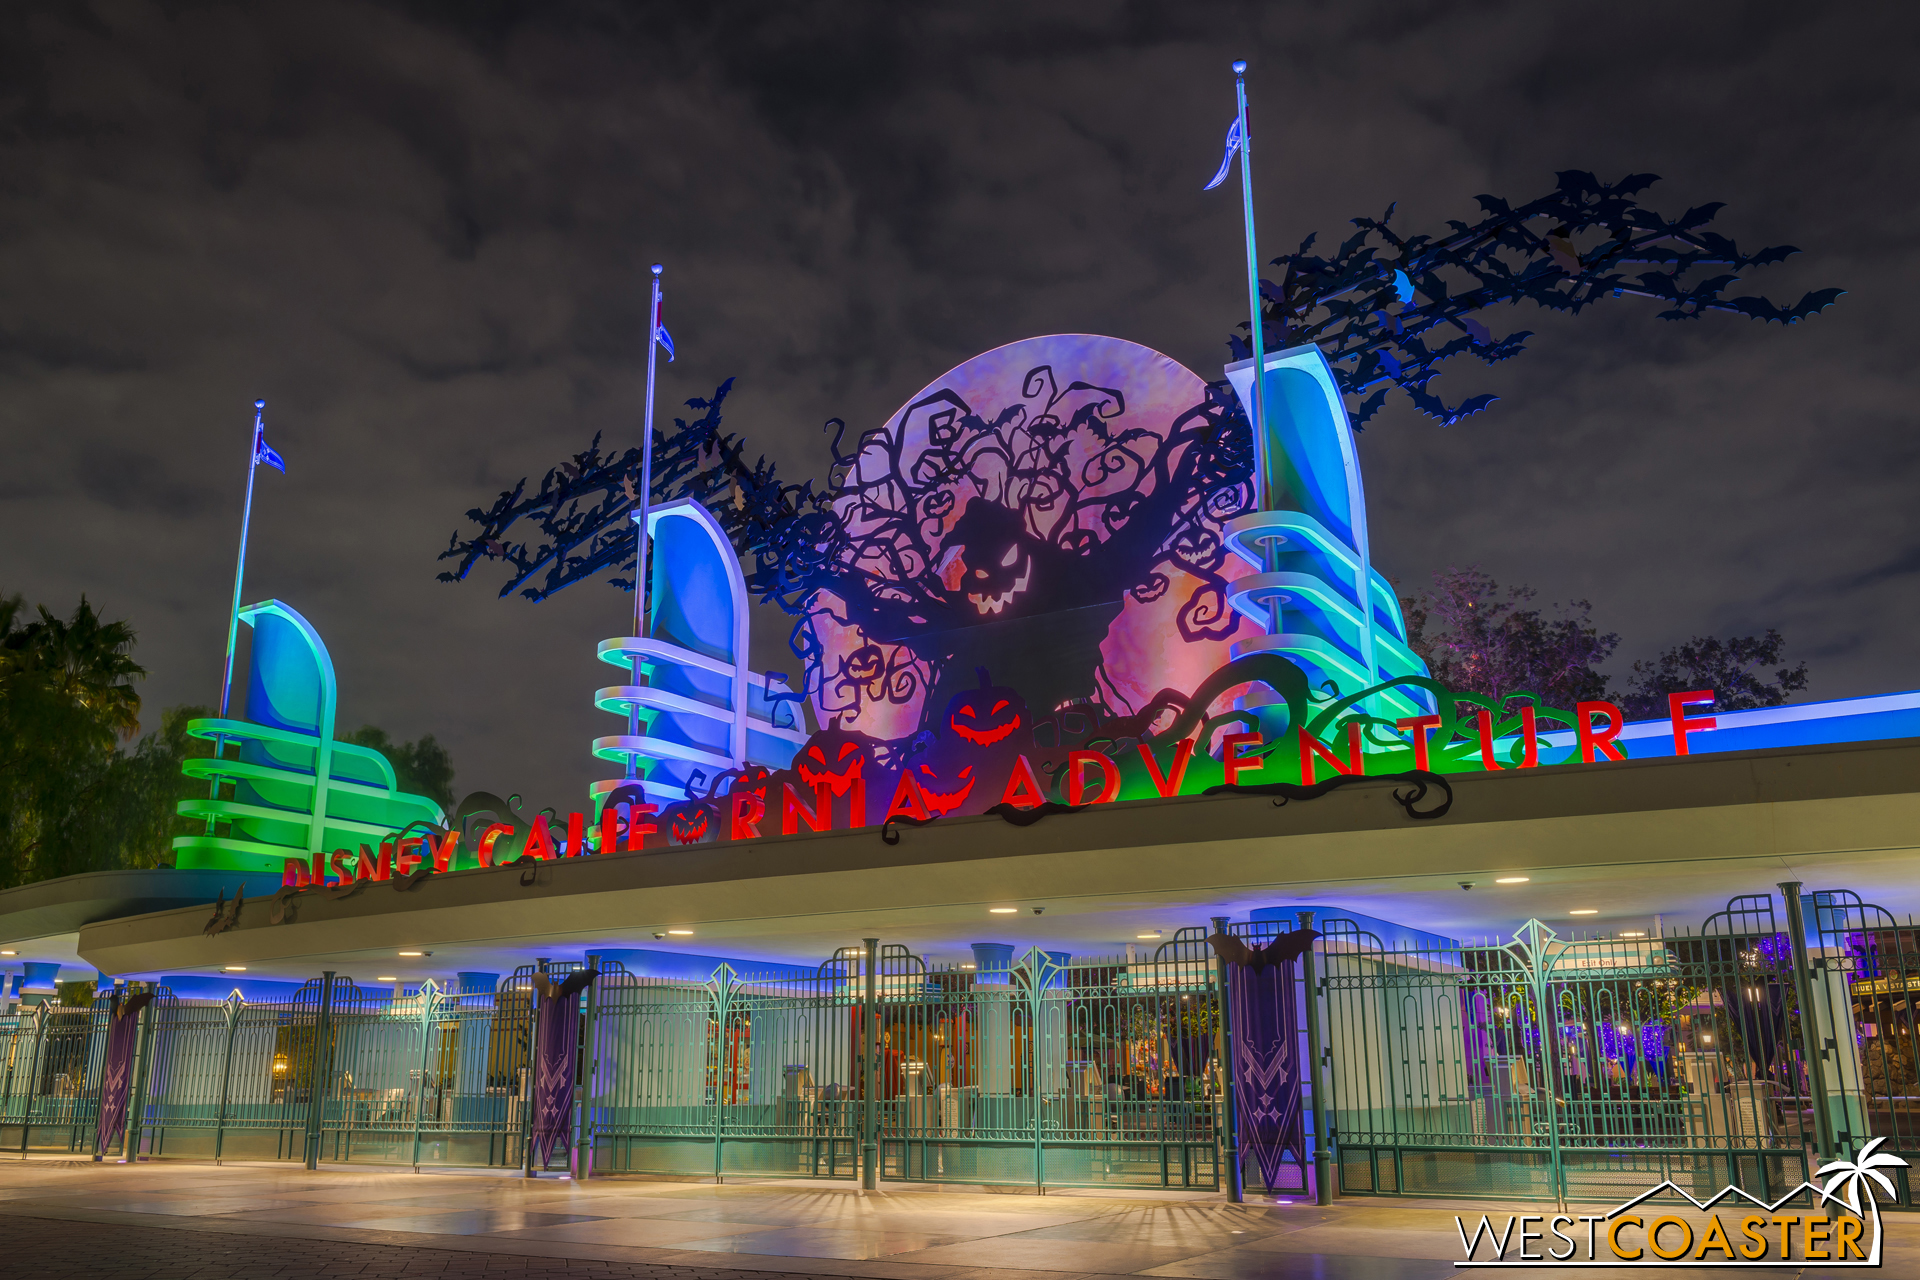 It will be another ten months before the harvest moon rises again--with Oogie Boogie along with it!